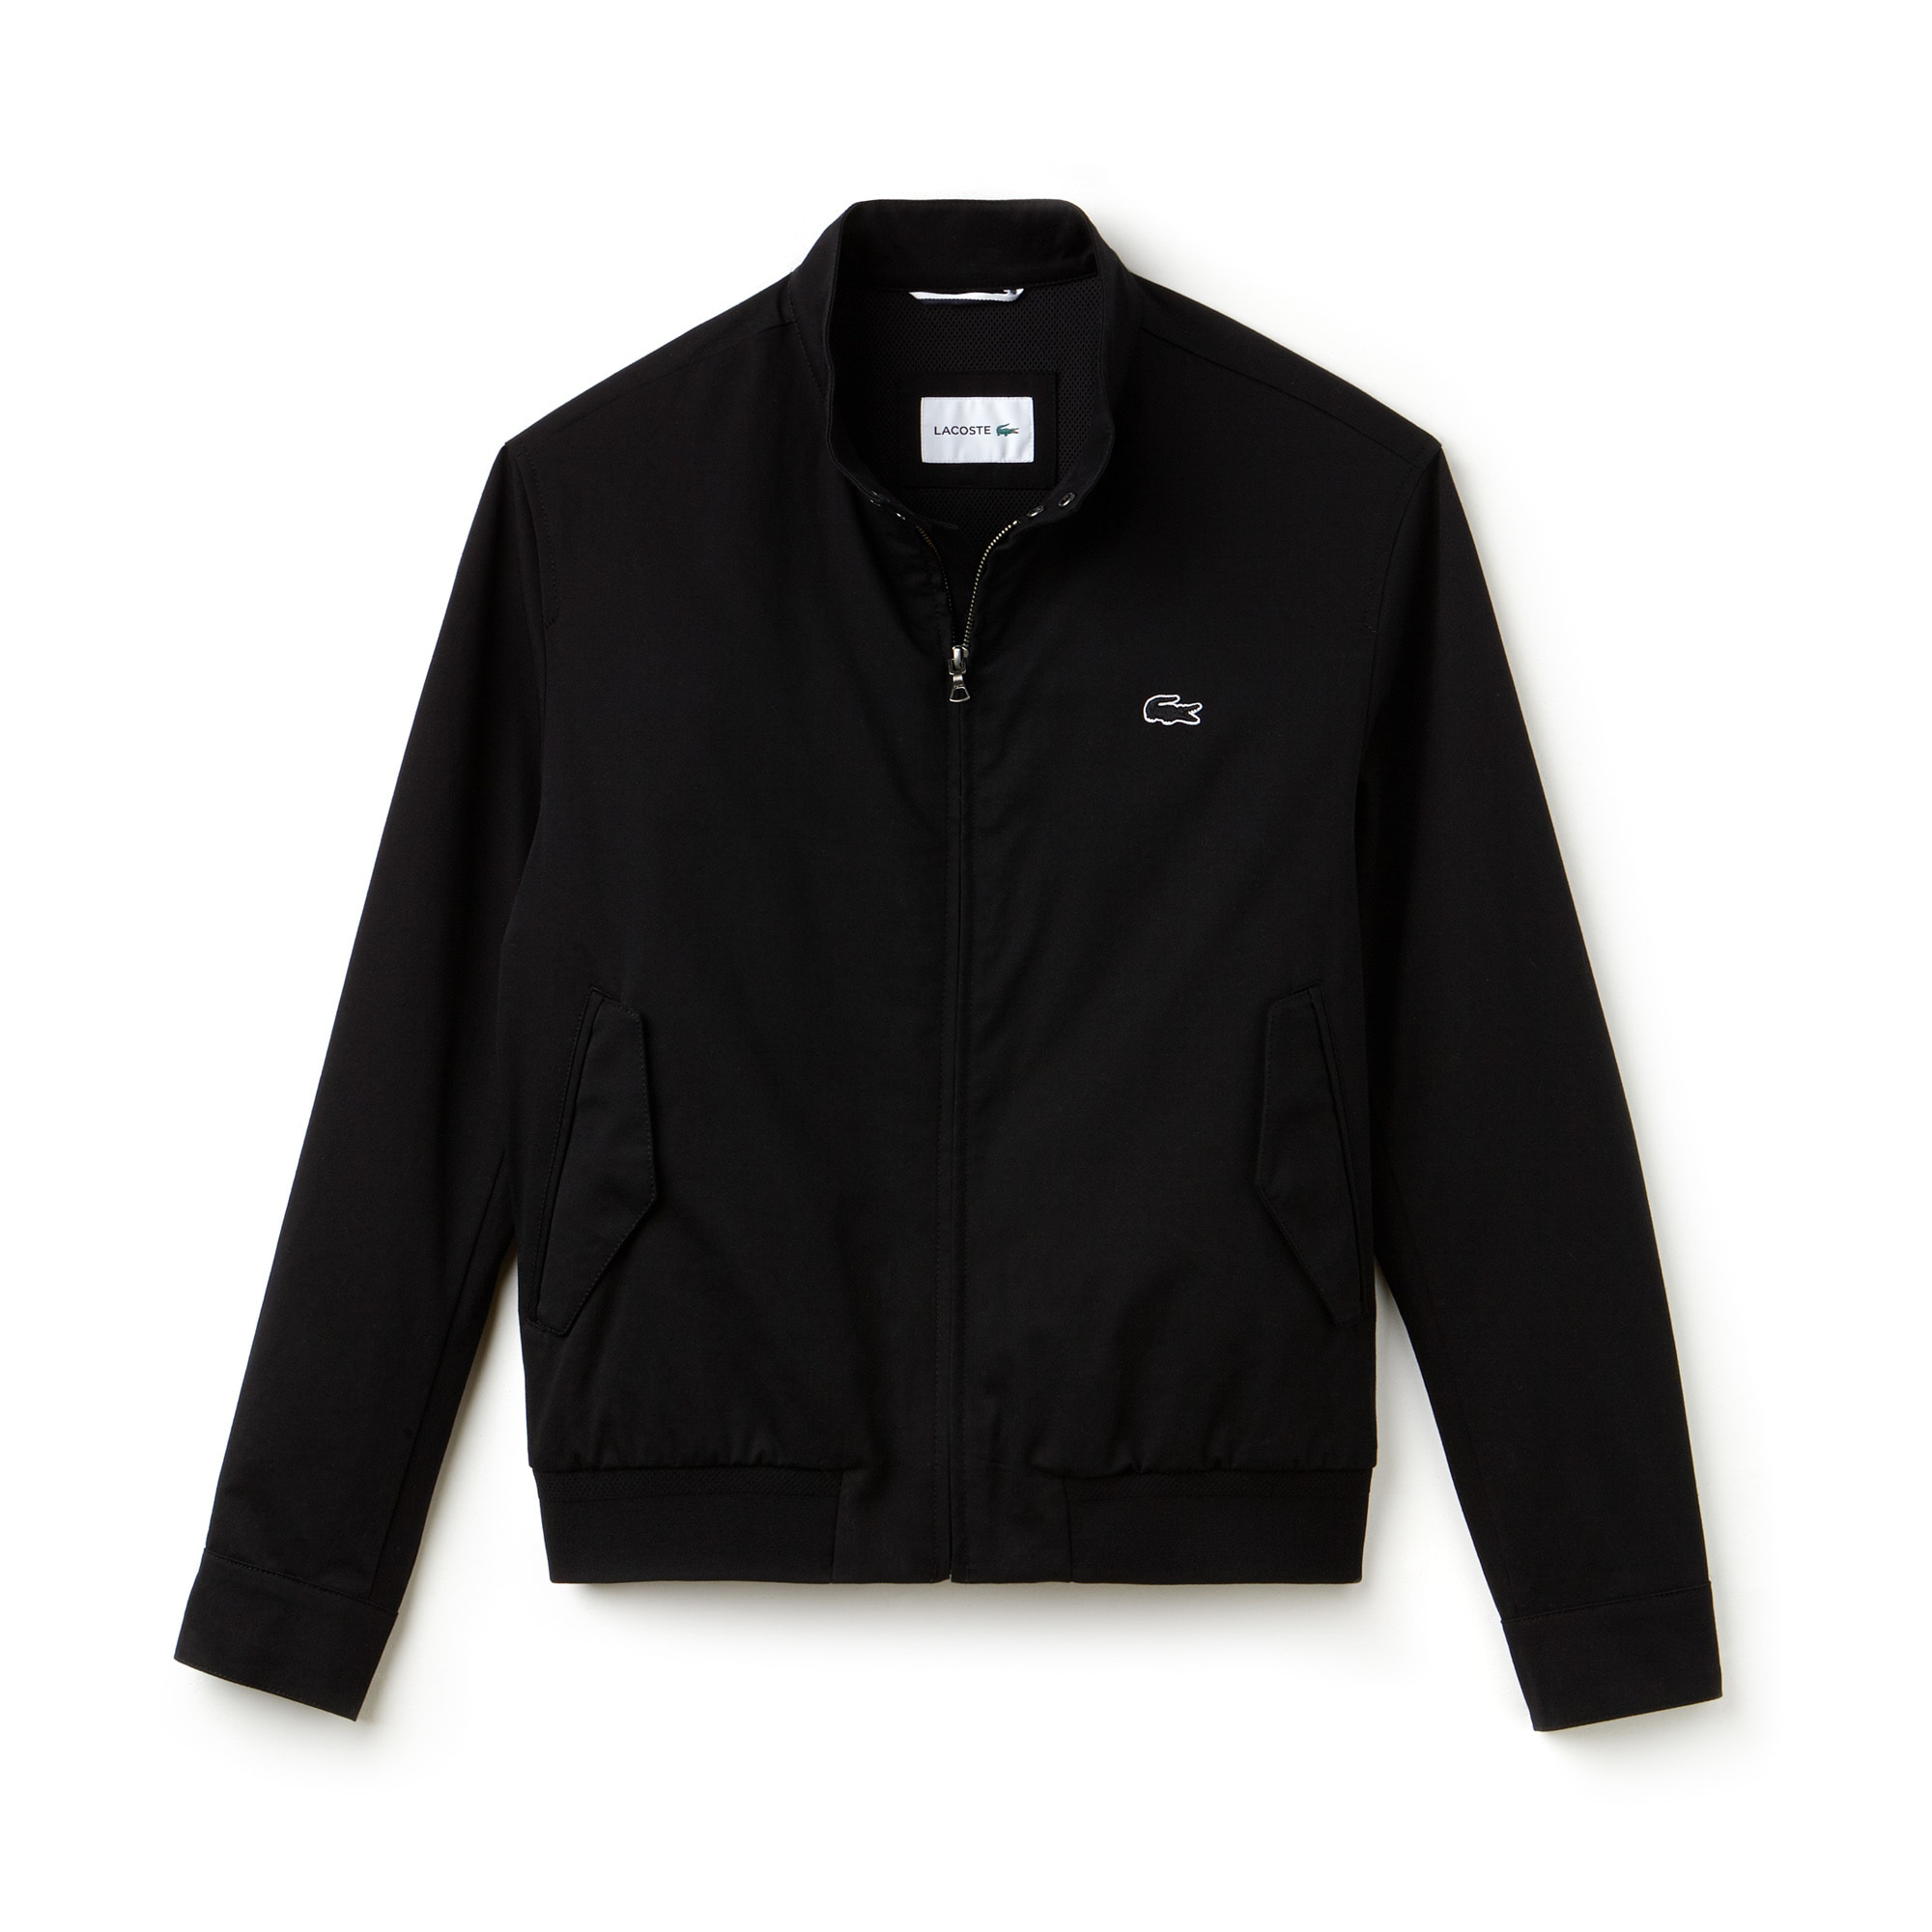 Men's Jackets and Coats | Lacoste Outerwear | LACOSTE